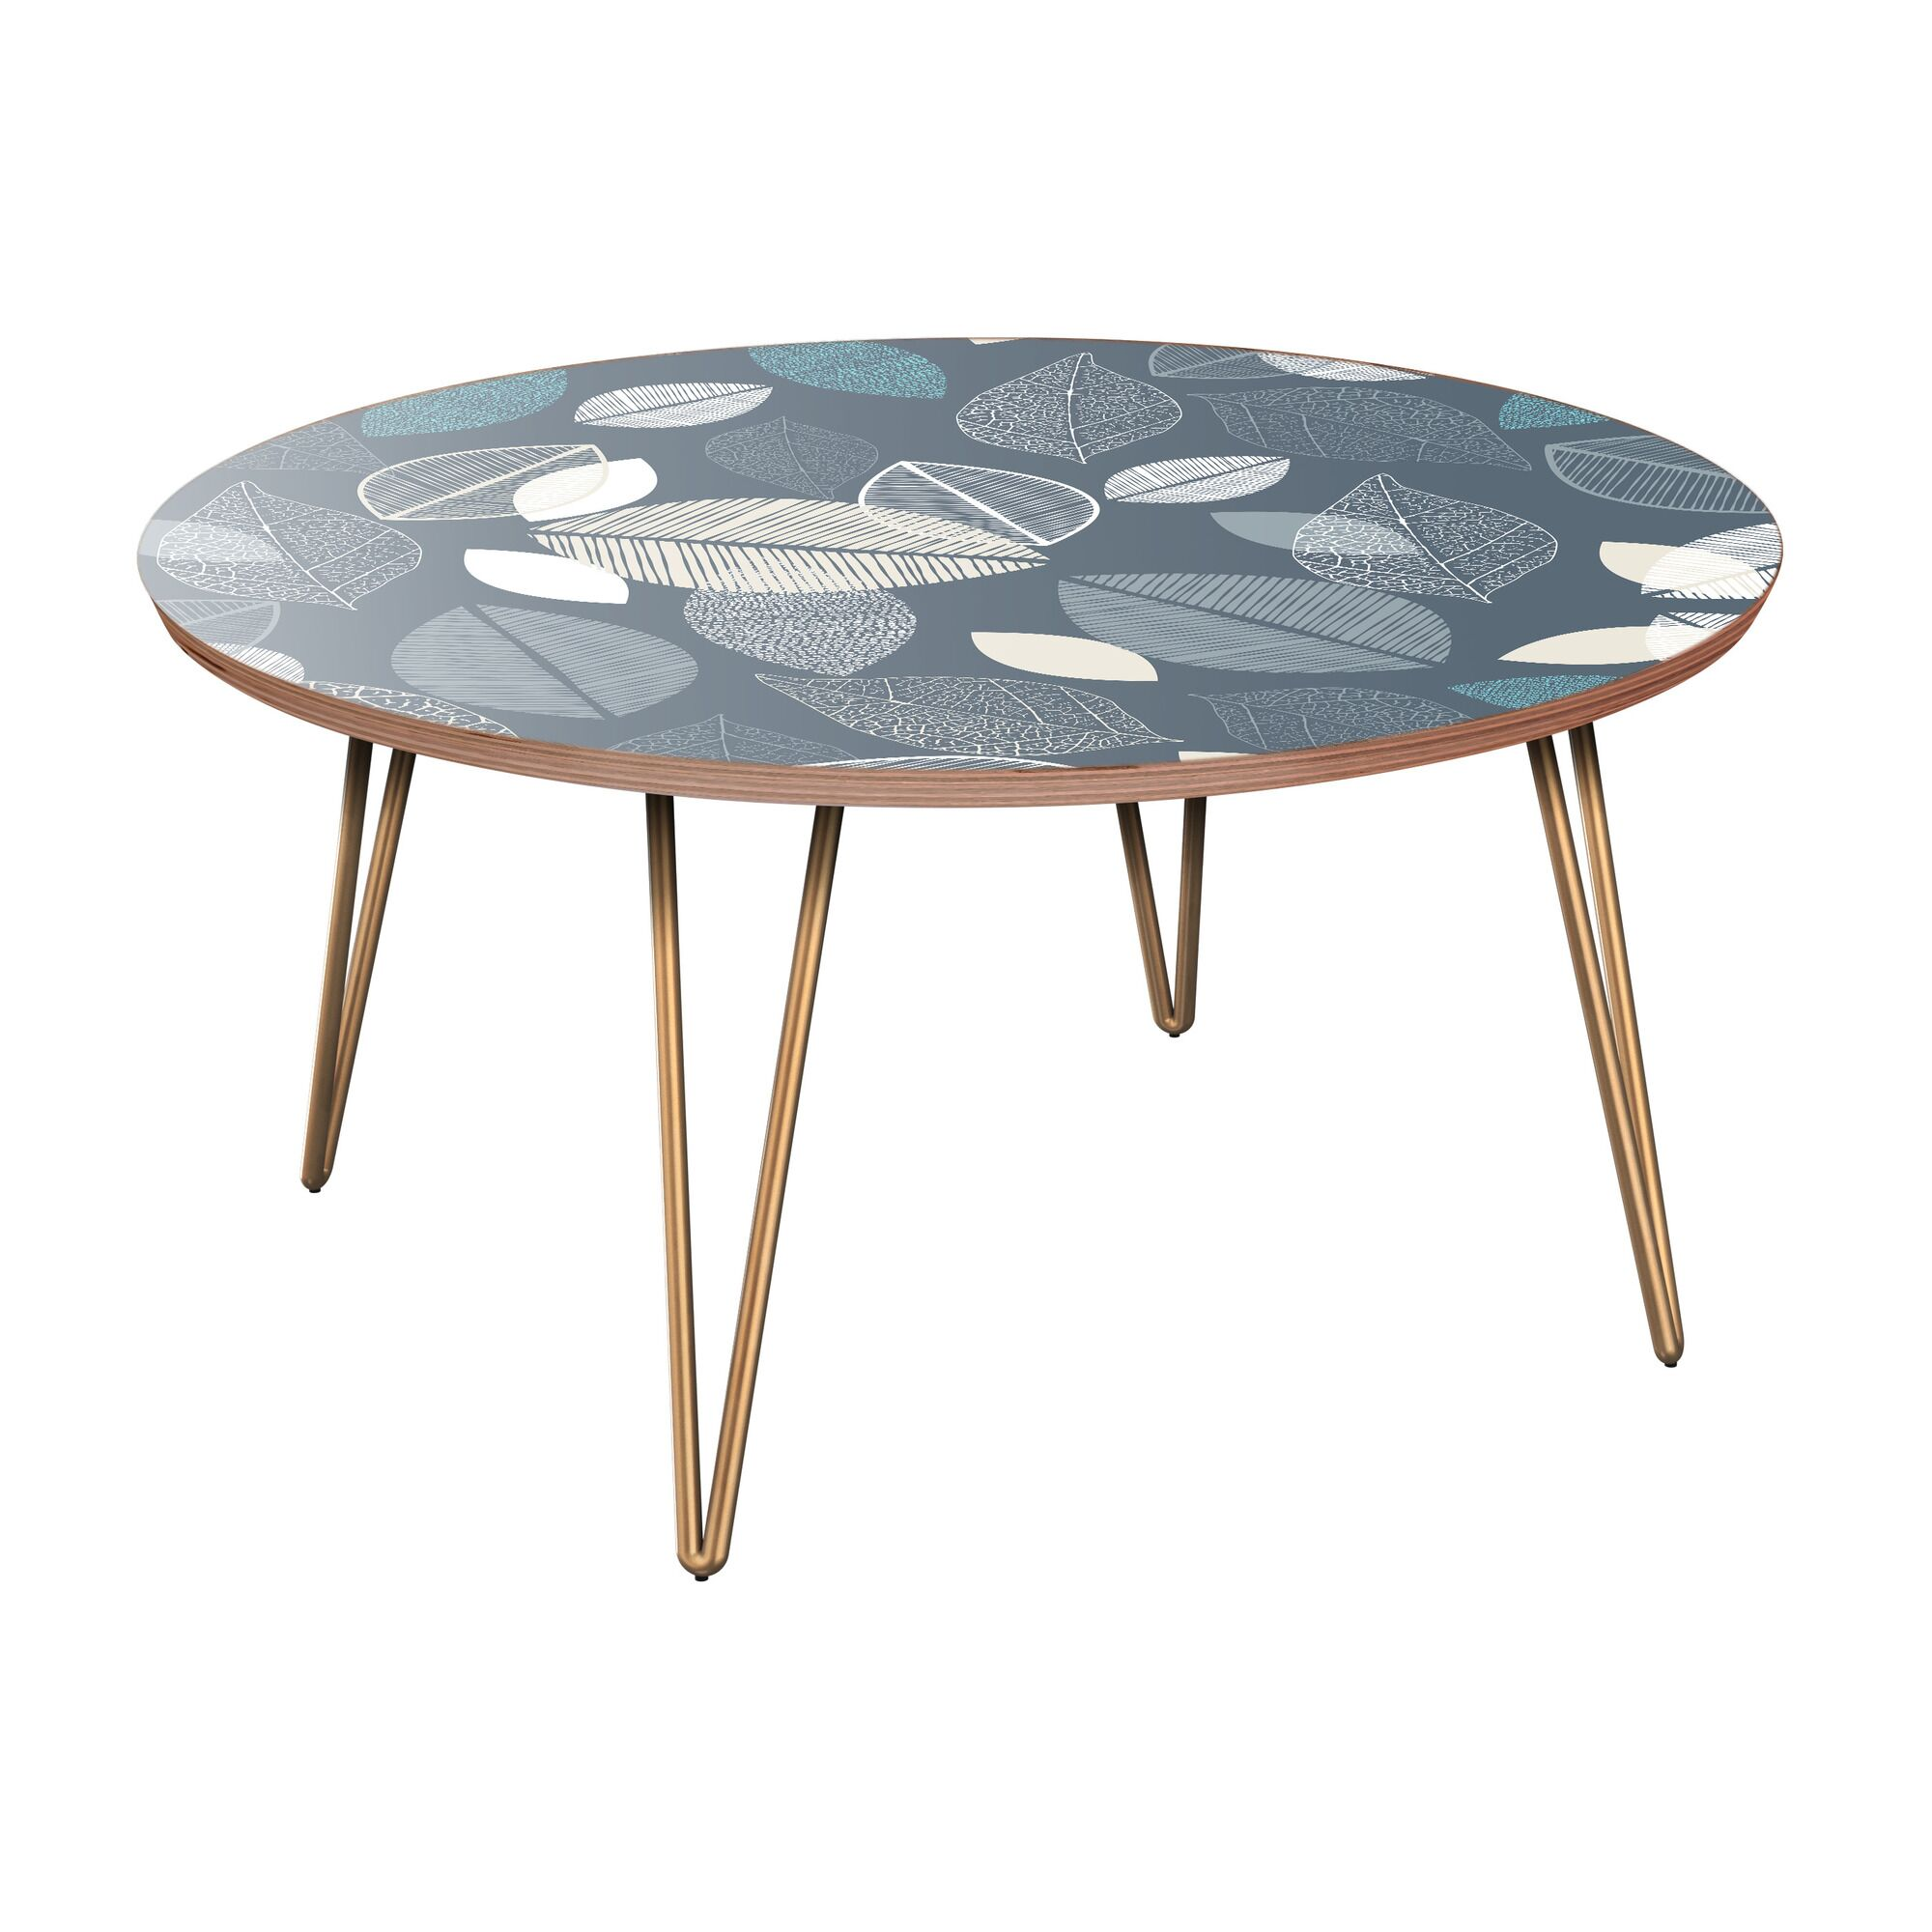 Joshuah Coffee Table Table Base Color: Brass, Table Top Boarder Color: Walnut, Table Top Color: Blue